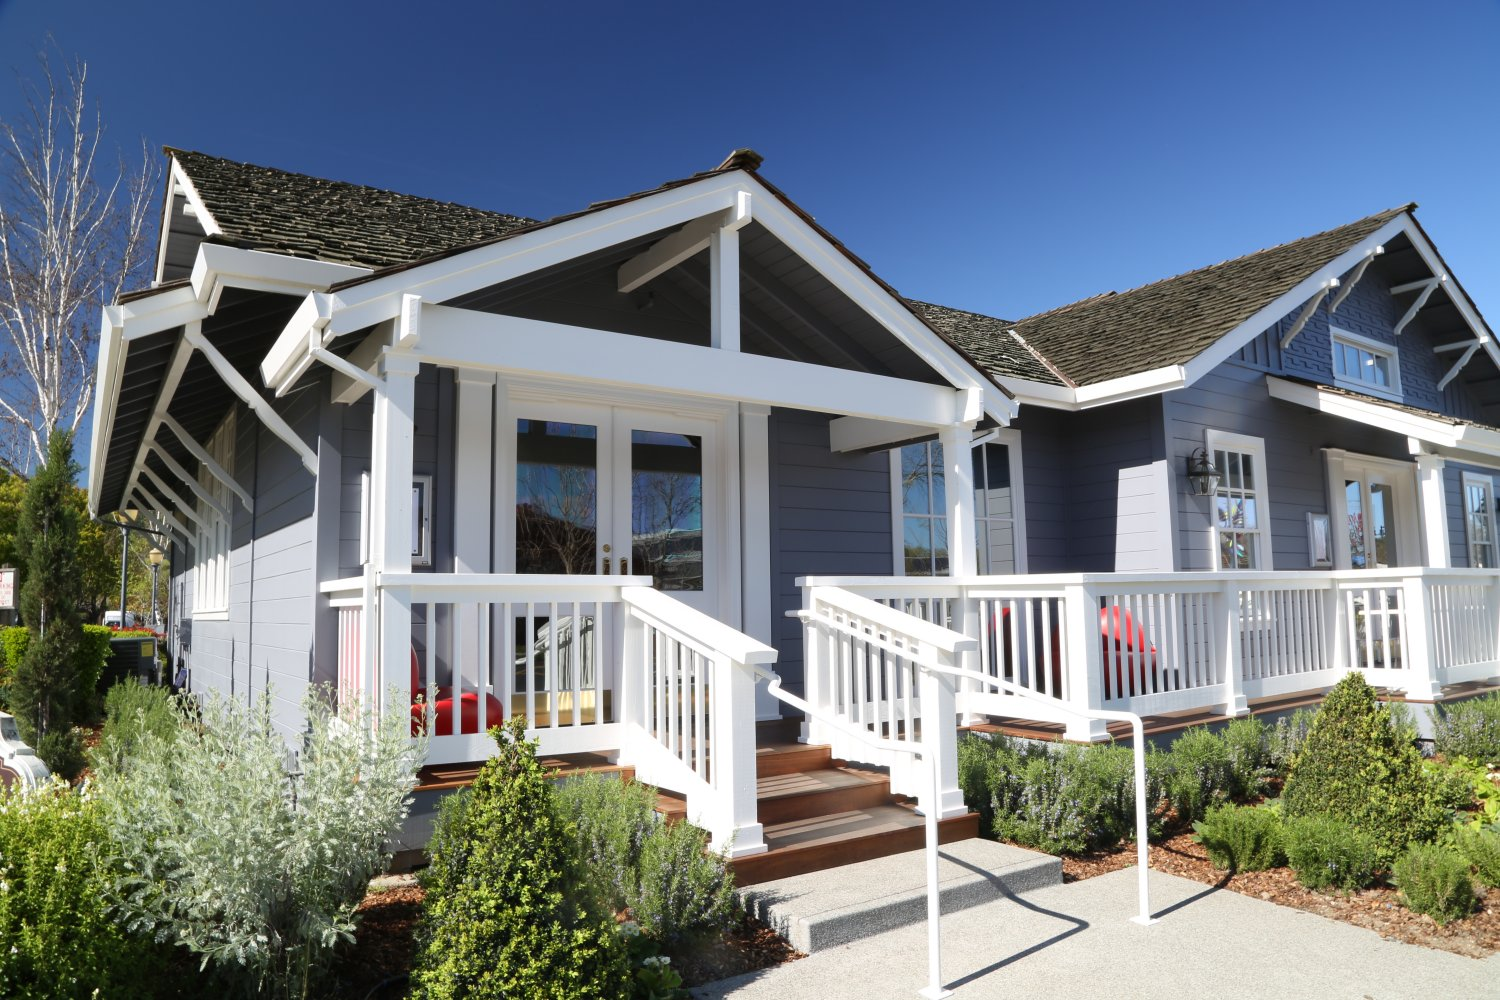 Salon style cottage gallery of country style homes chalet for Salon cottage